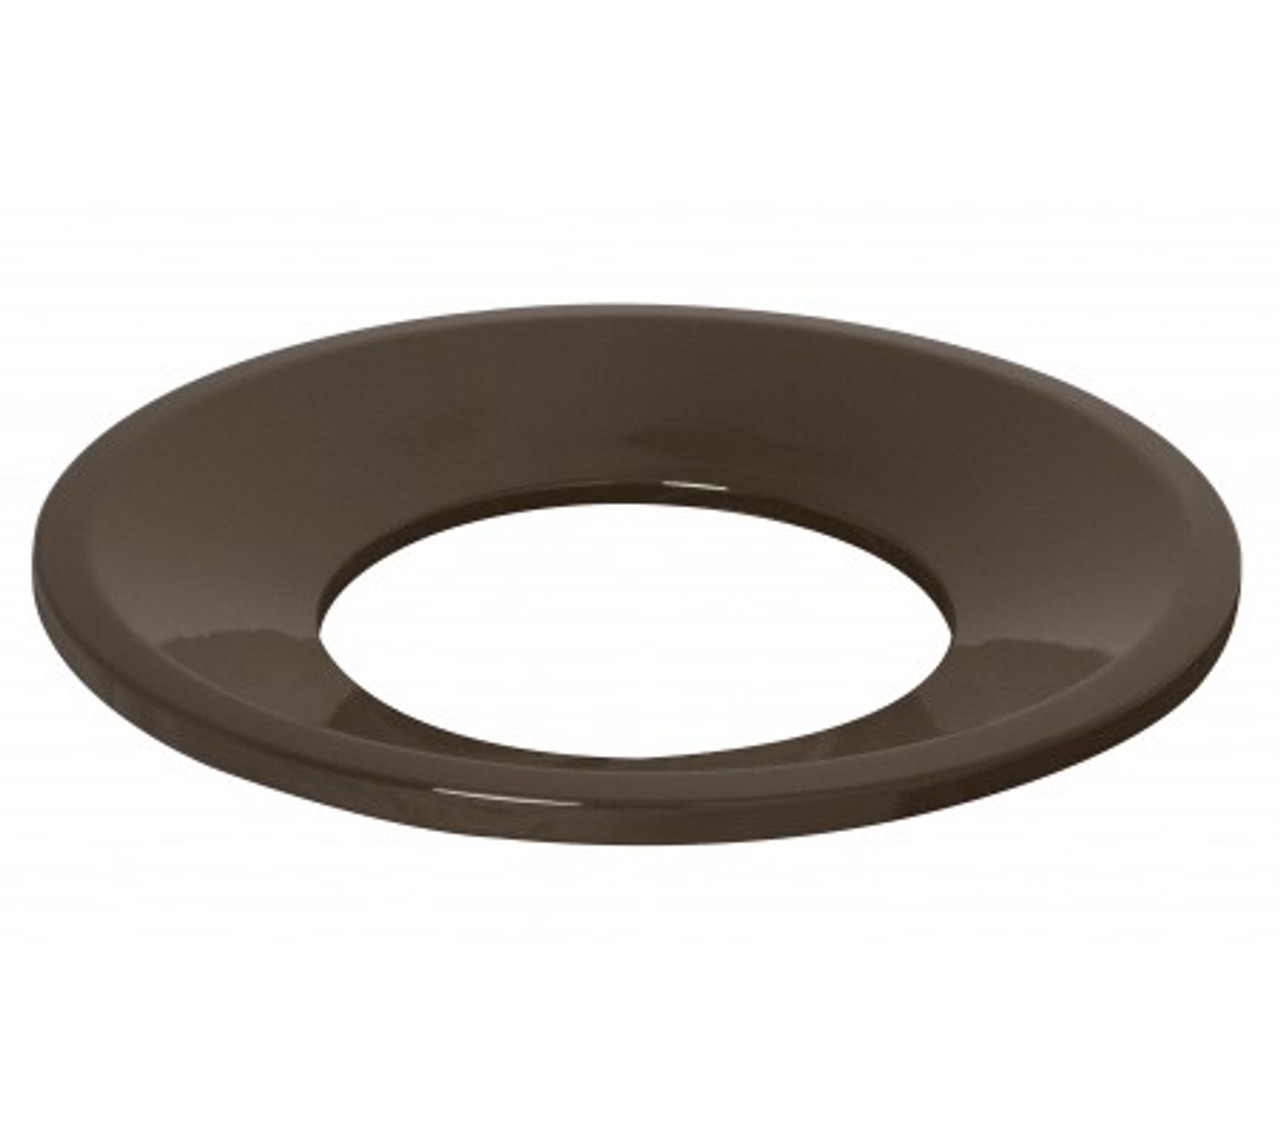 Funnel Lid Textured Brown Trash Can Lid